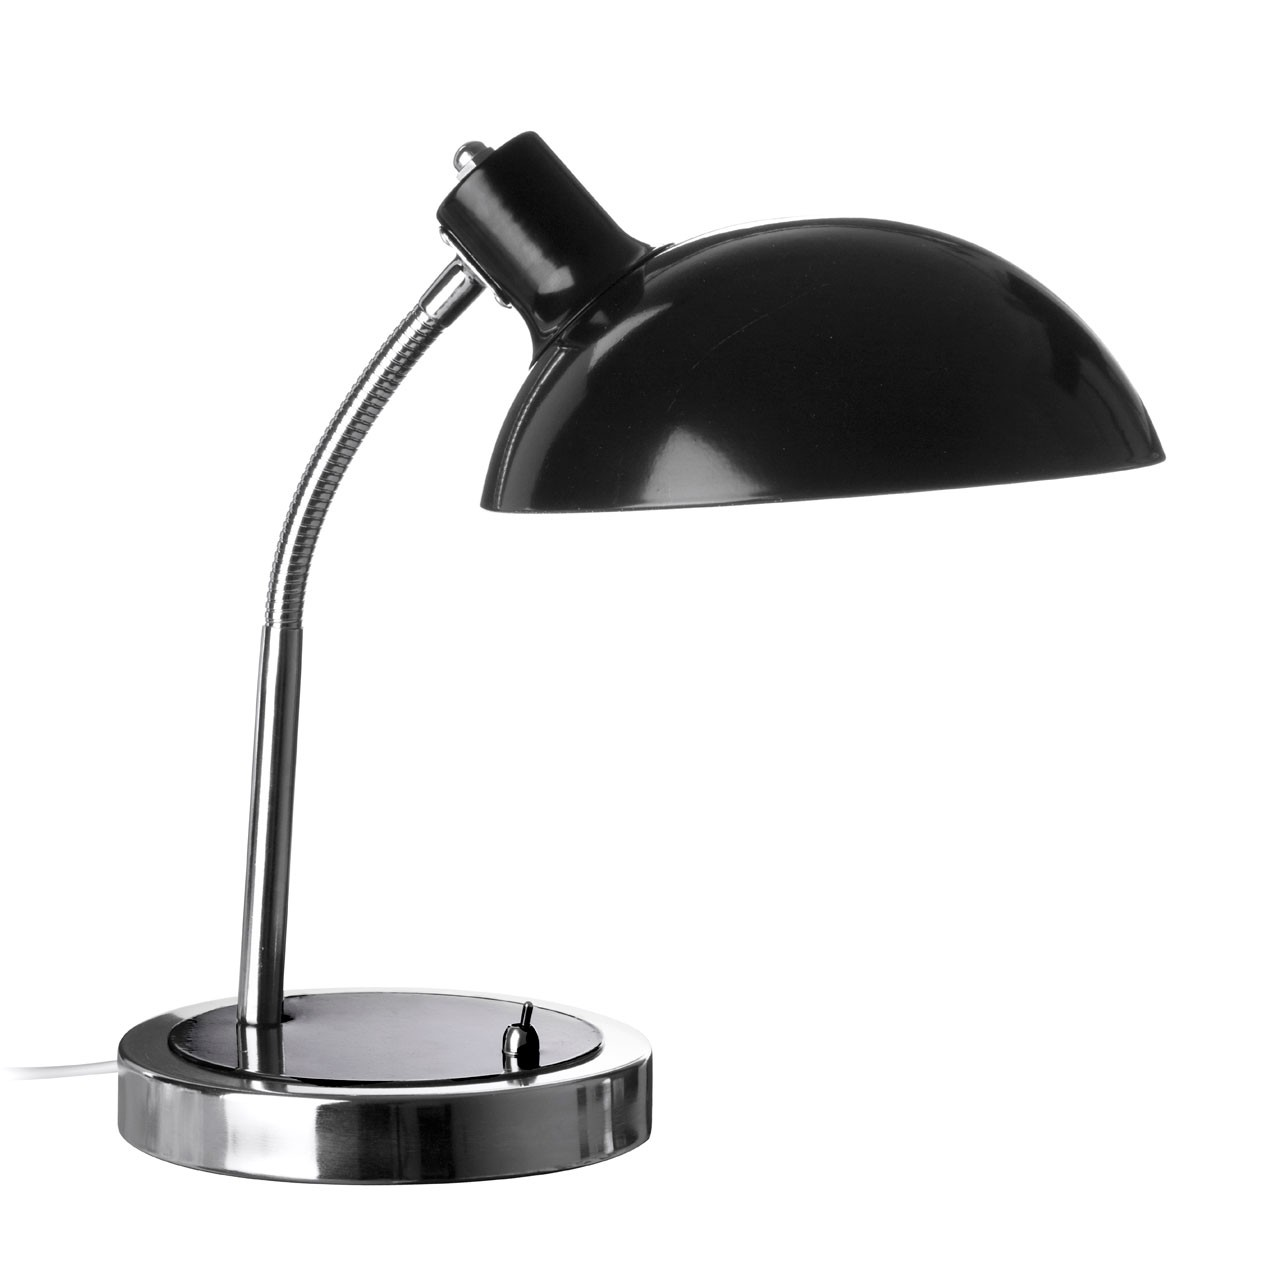 Prime Furnishing Flexible Metal Desk Lamp - Black